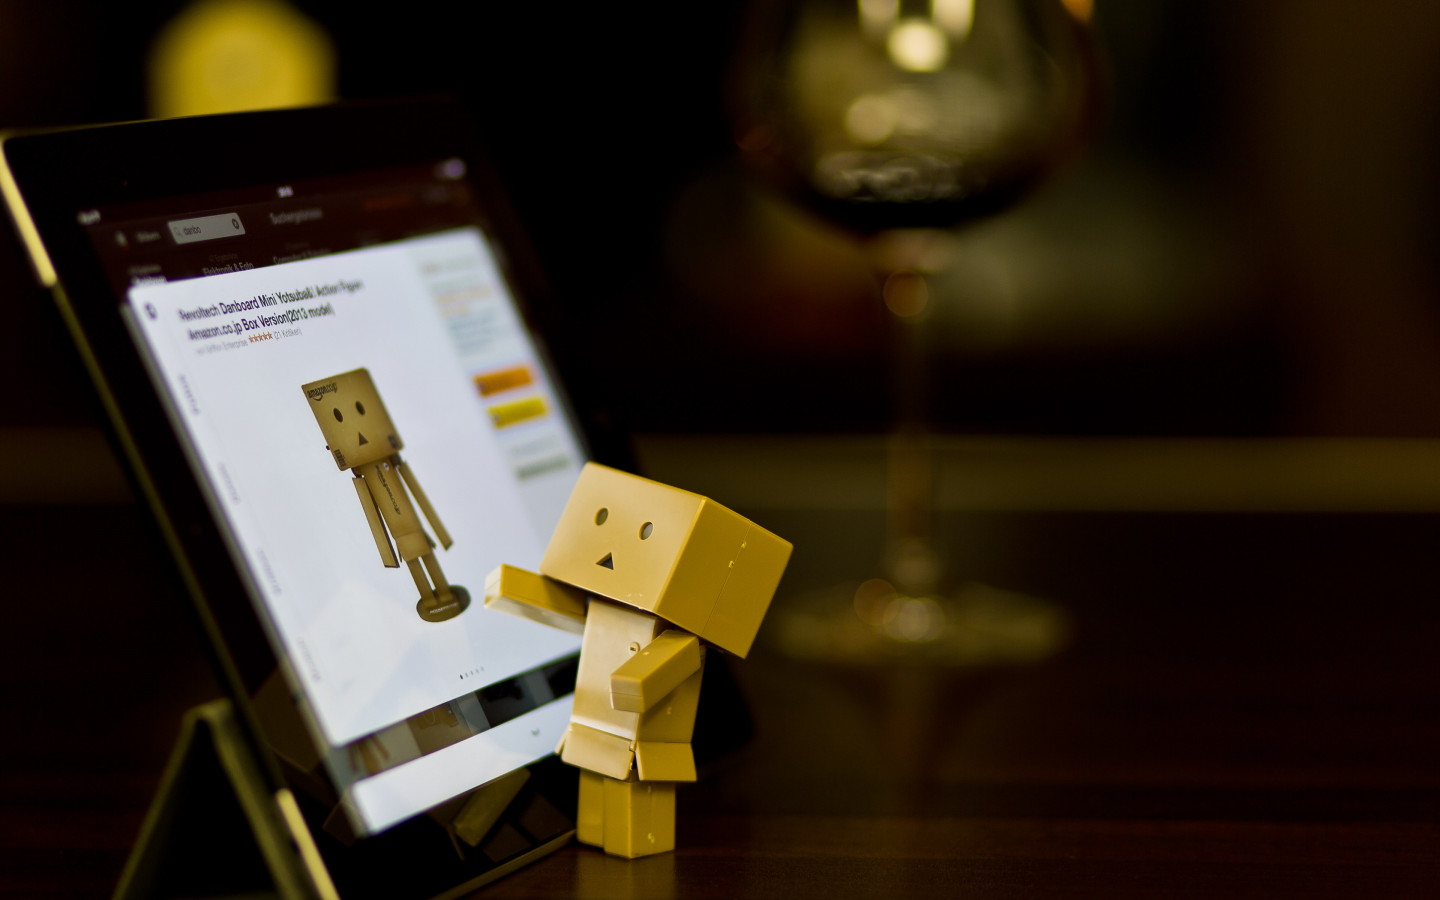 Danbo with tablet | 1440x900 wallpaper